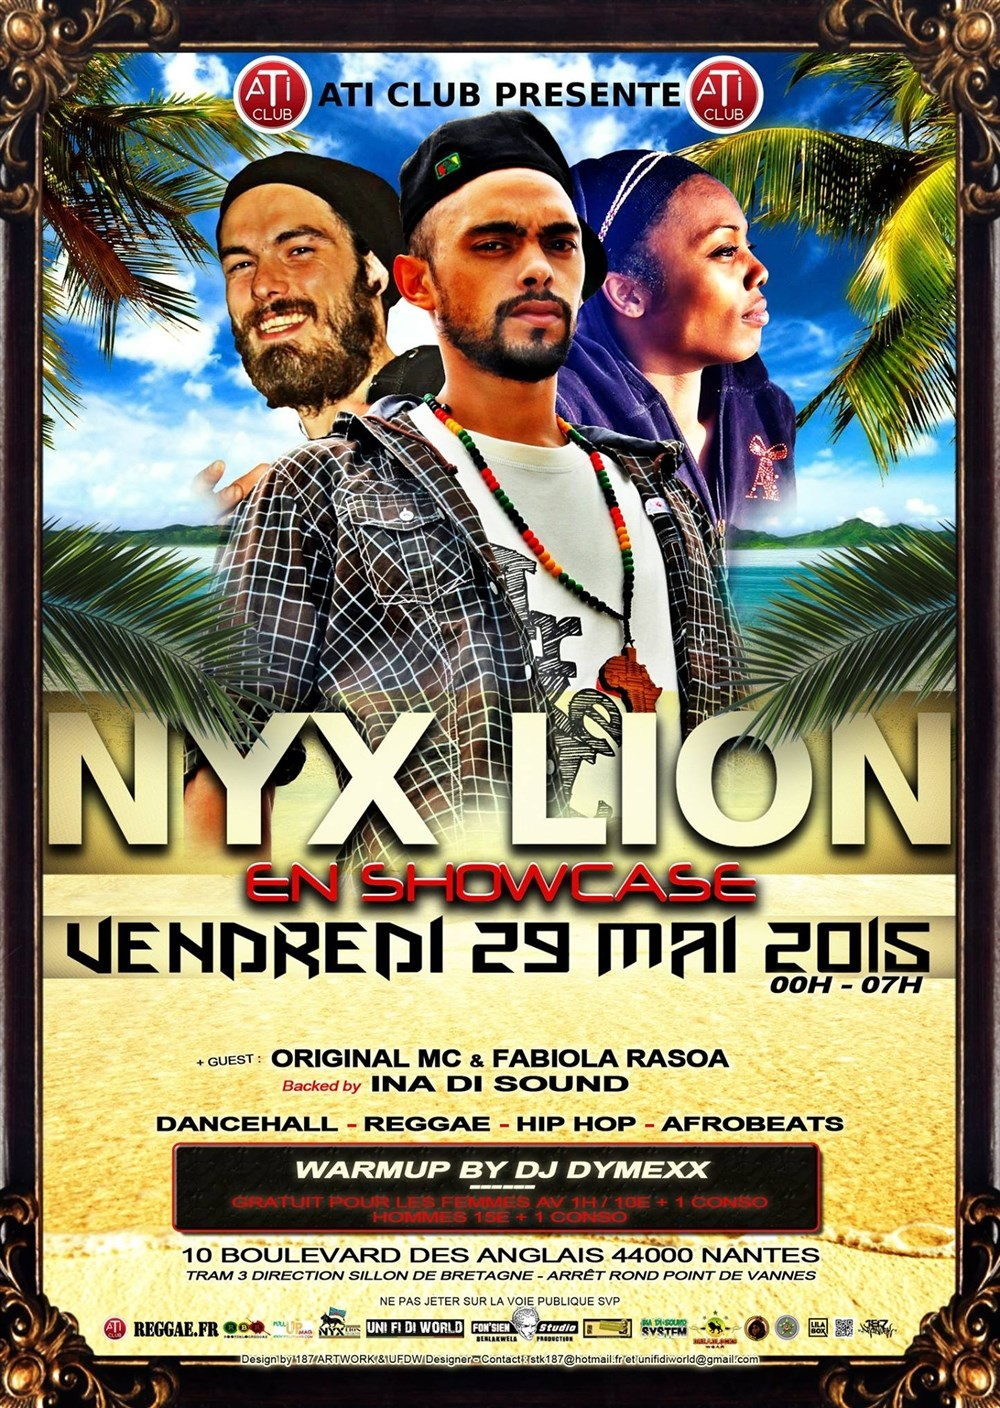 Showcase de Nyx Lion Nantes